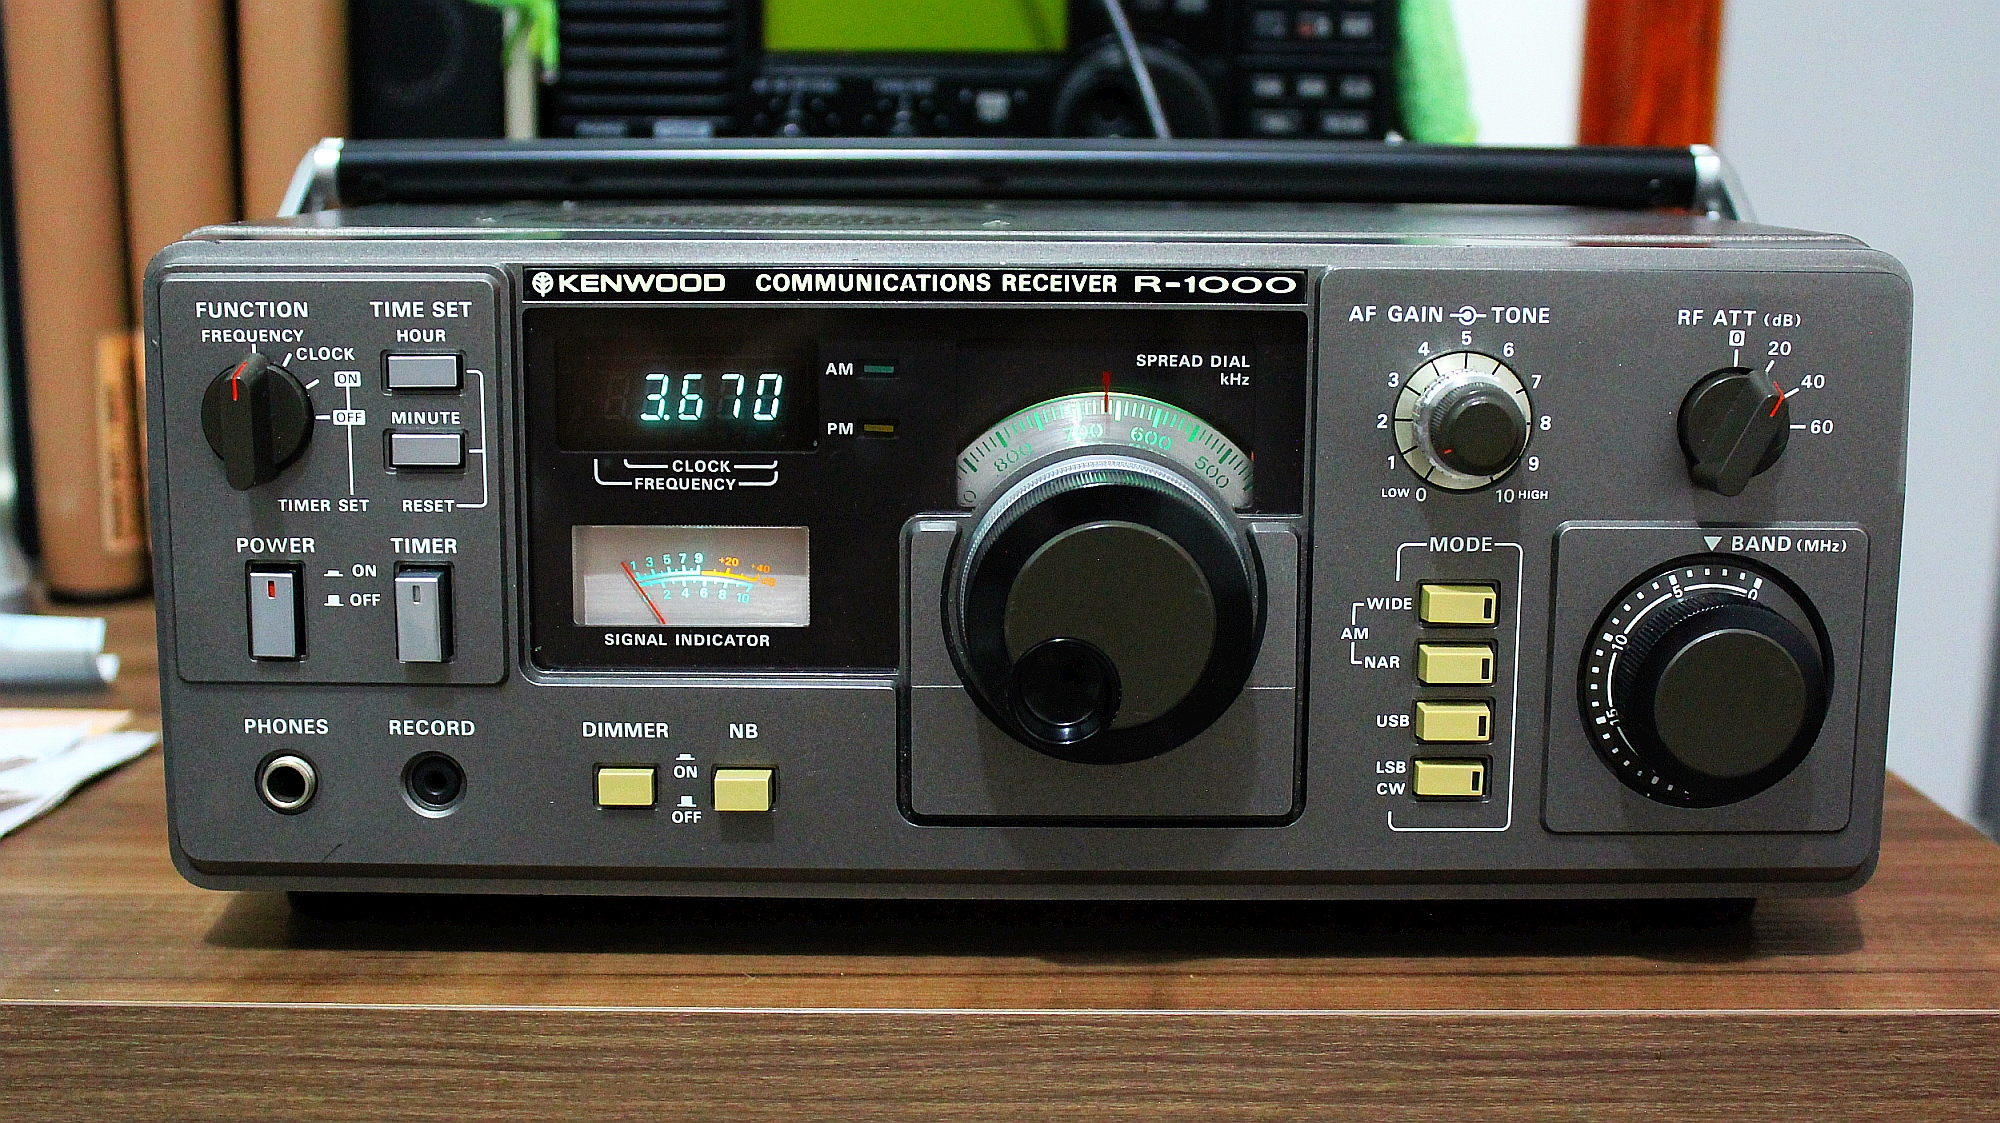 kenwood r 1000 rh amantesdoradio com br kenwood r 1000 service manual Kenwood R 2000 Communications Receiver